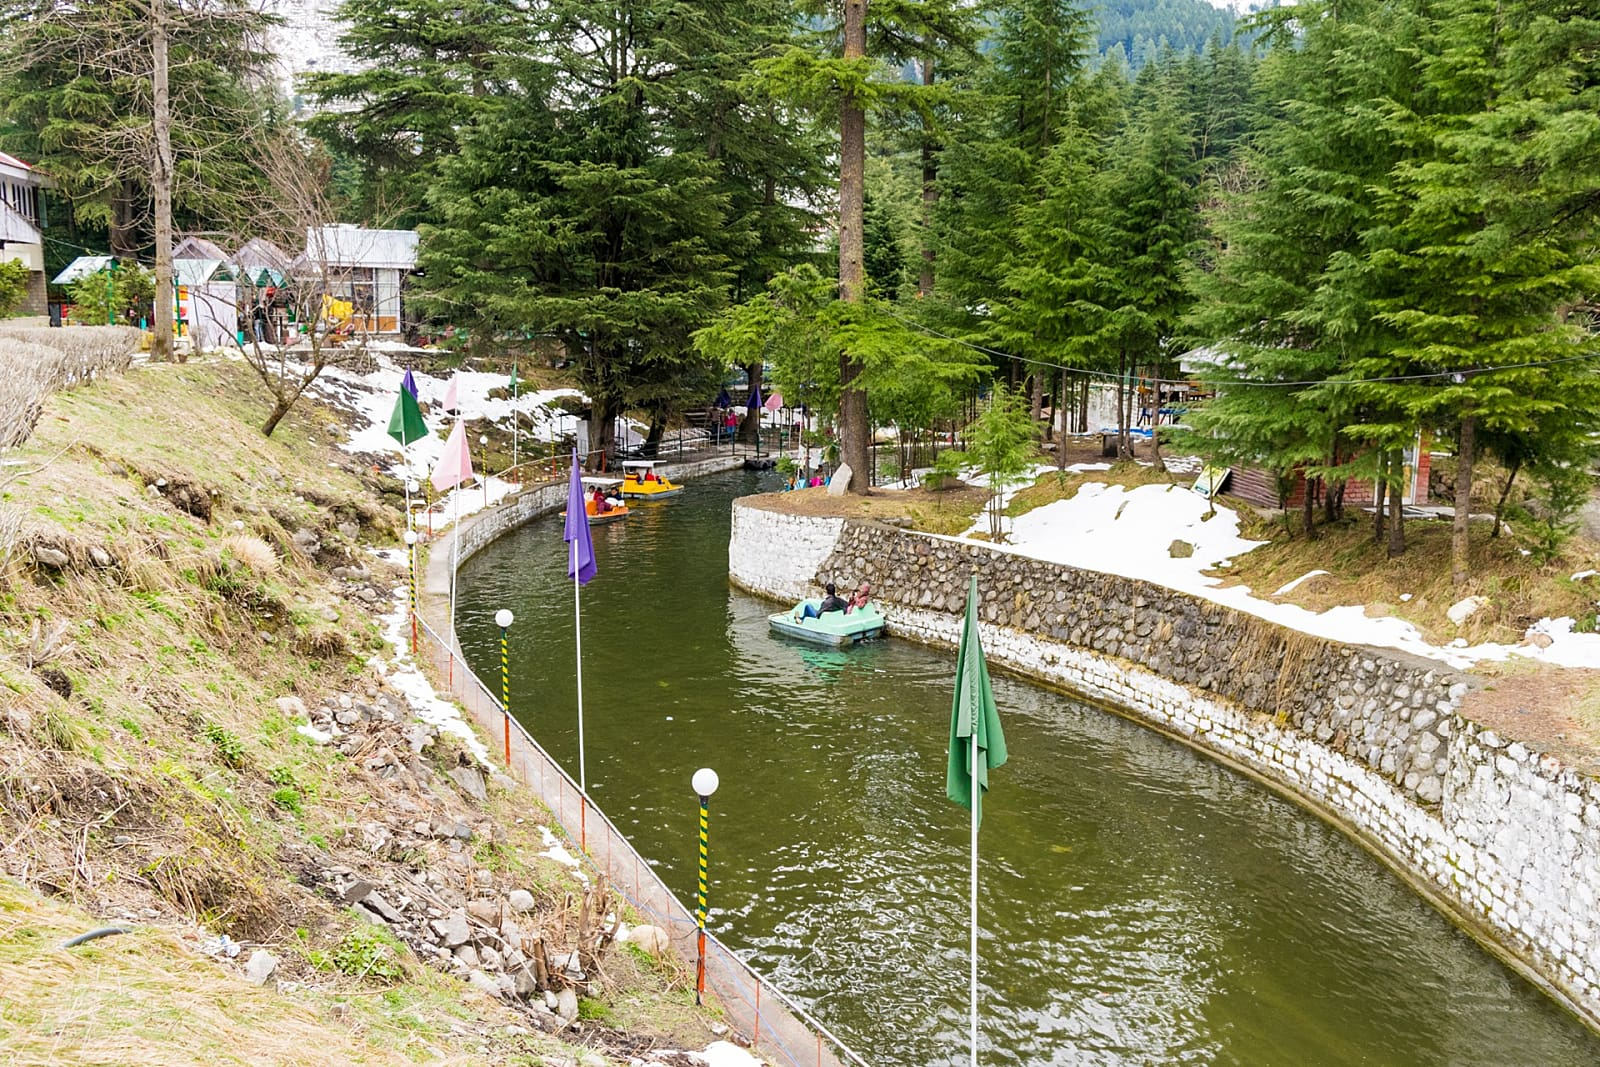 MANALI CLUB HOUSE